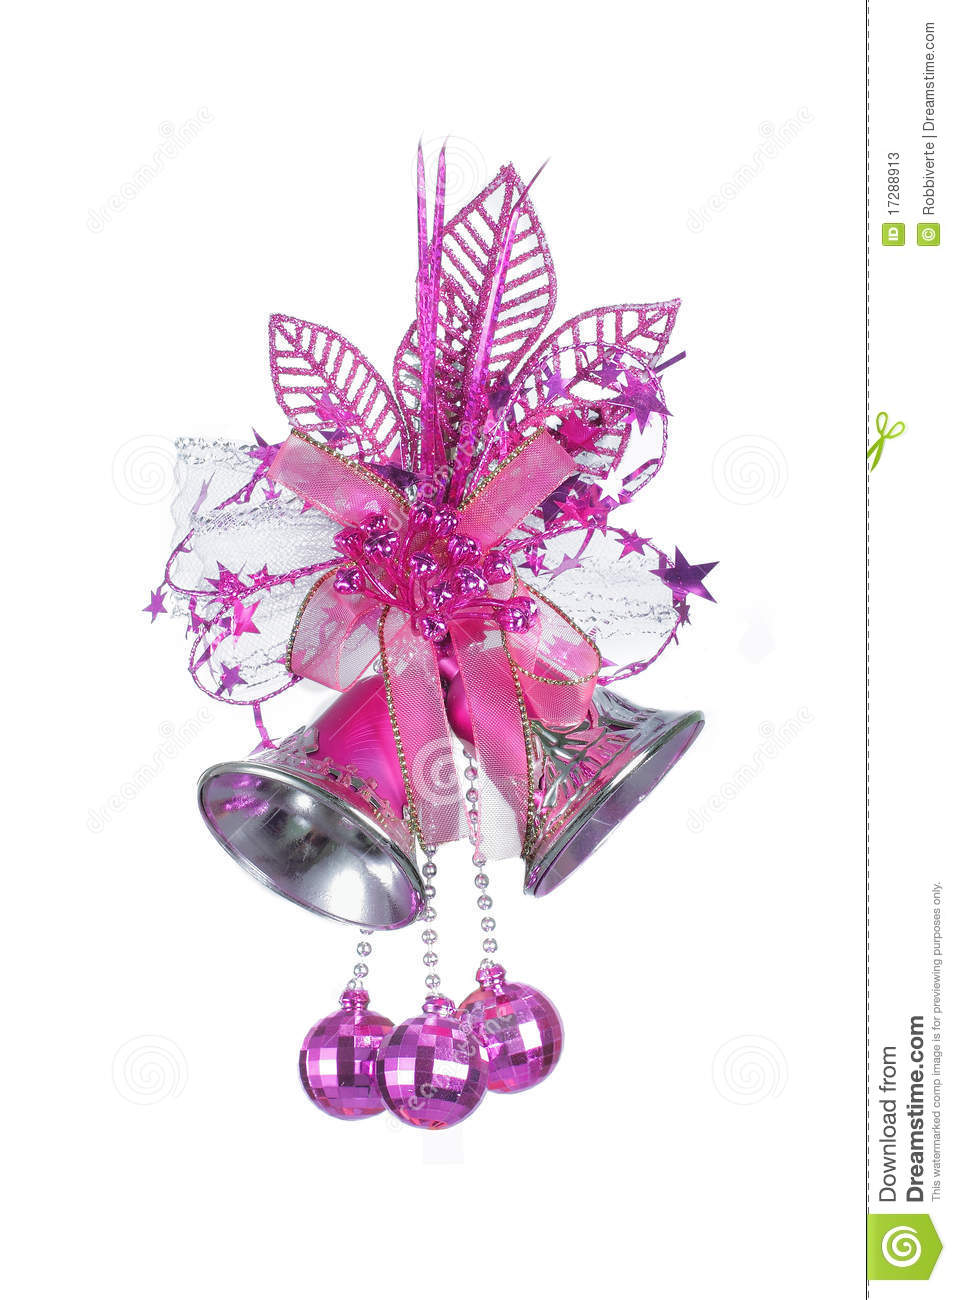 pink christmas bells stock image  image of present  green